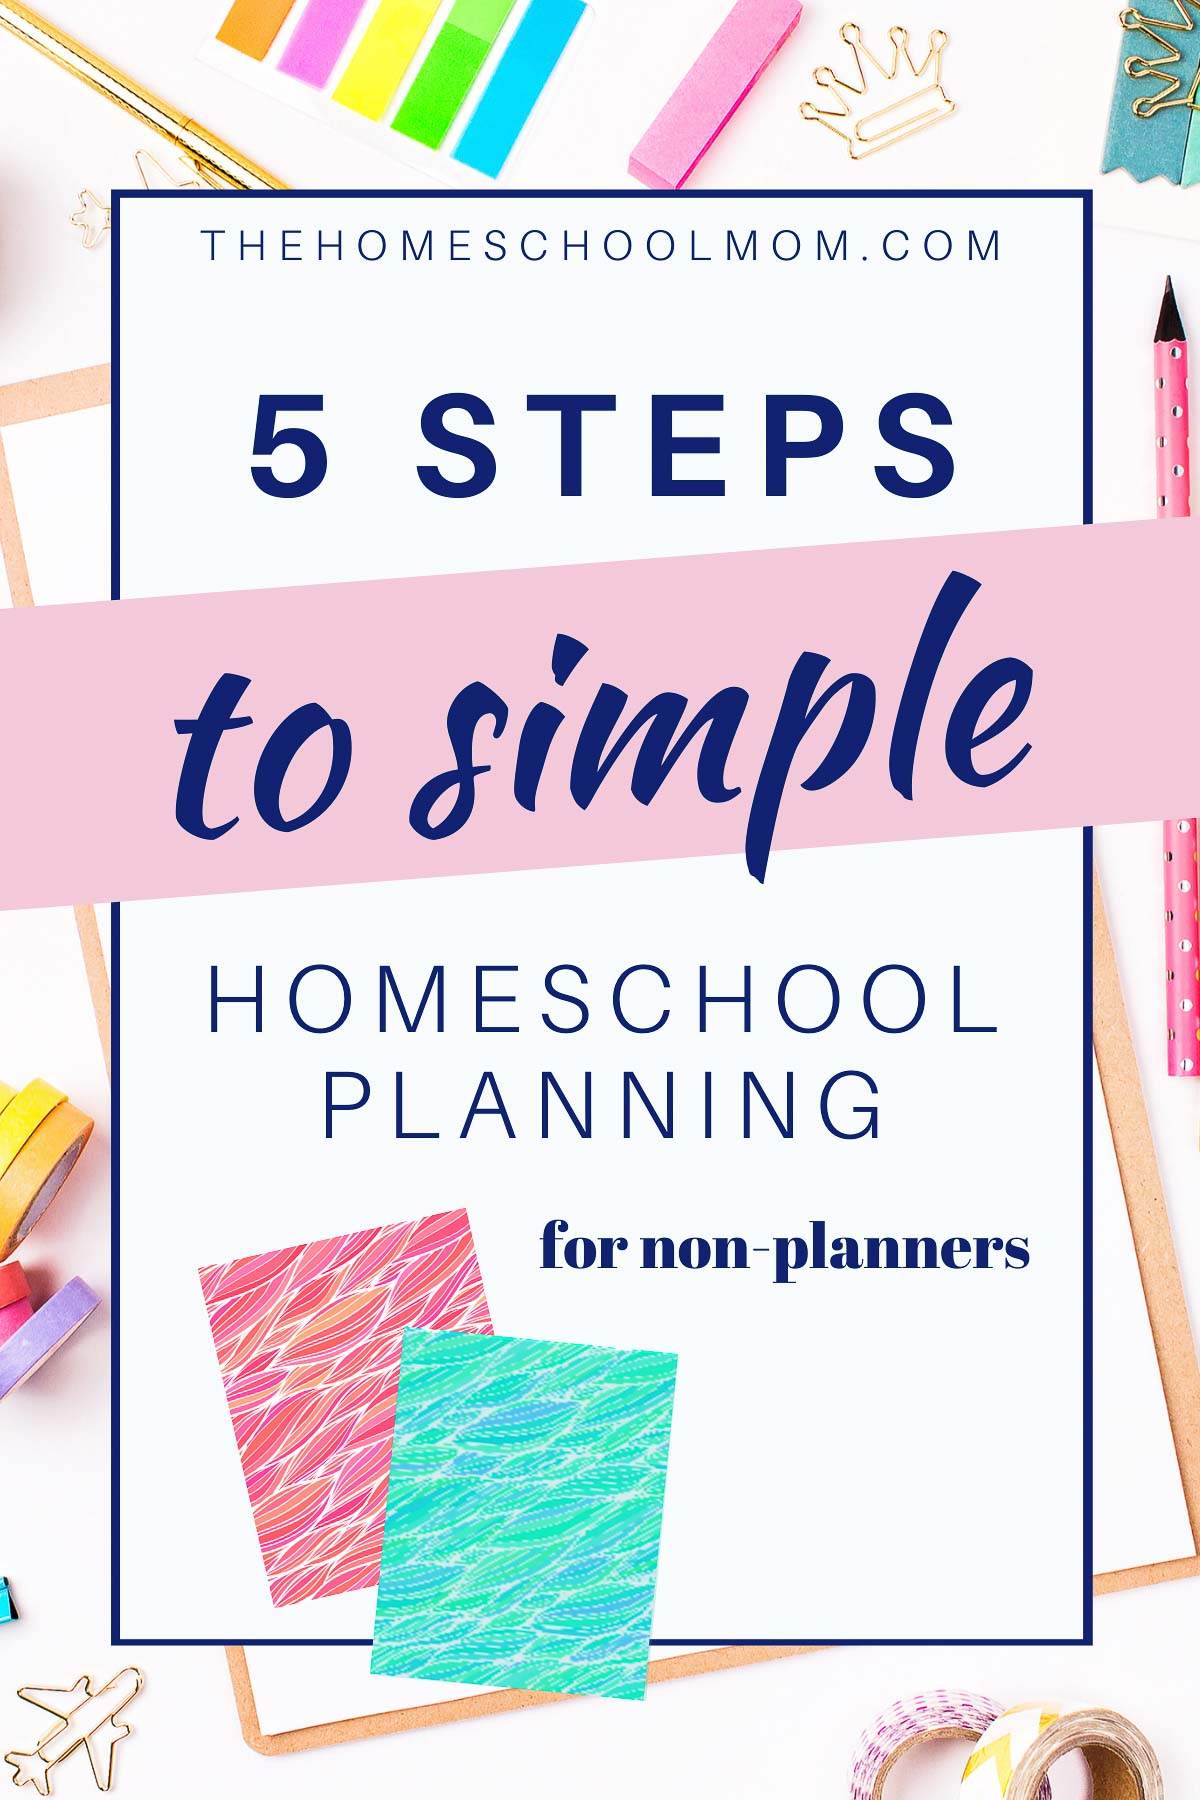 planning supplies with text 5 steps to simple homeschool planning for non-planners